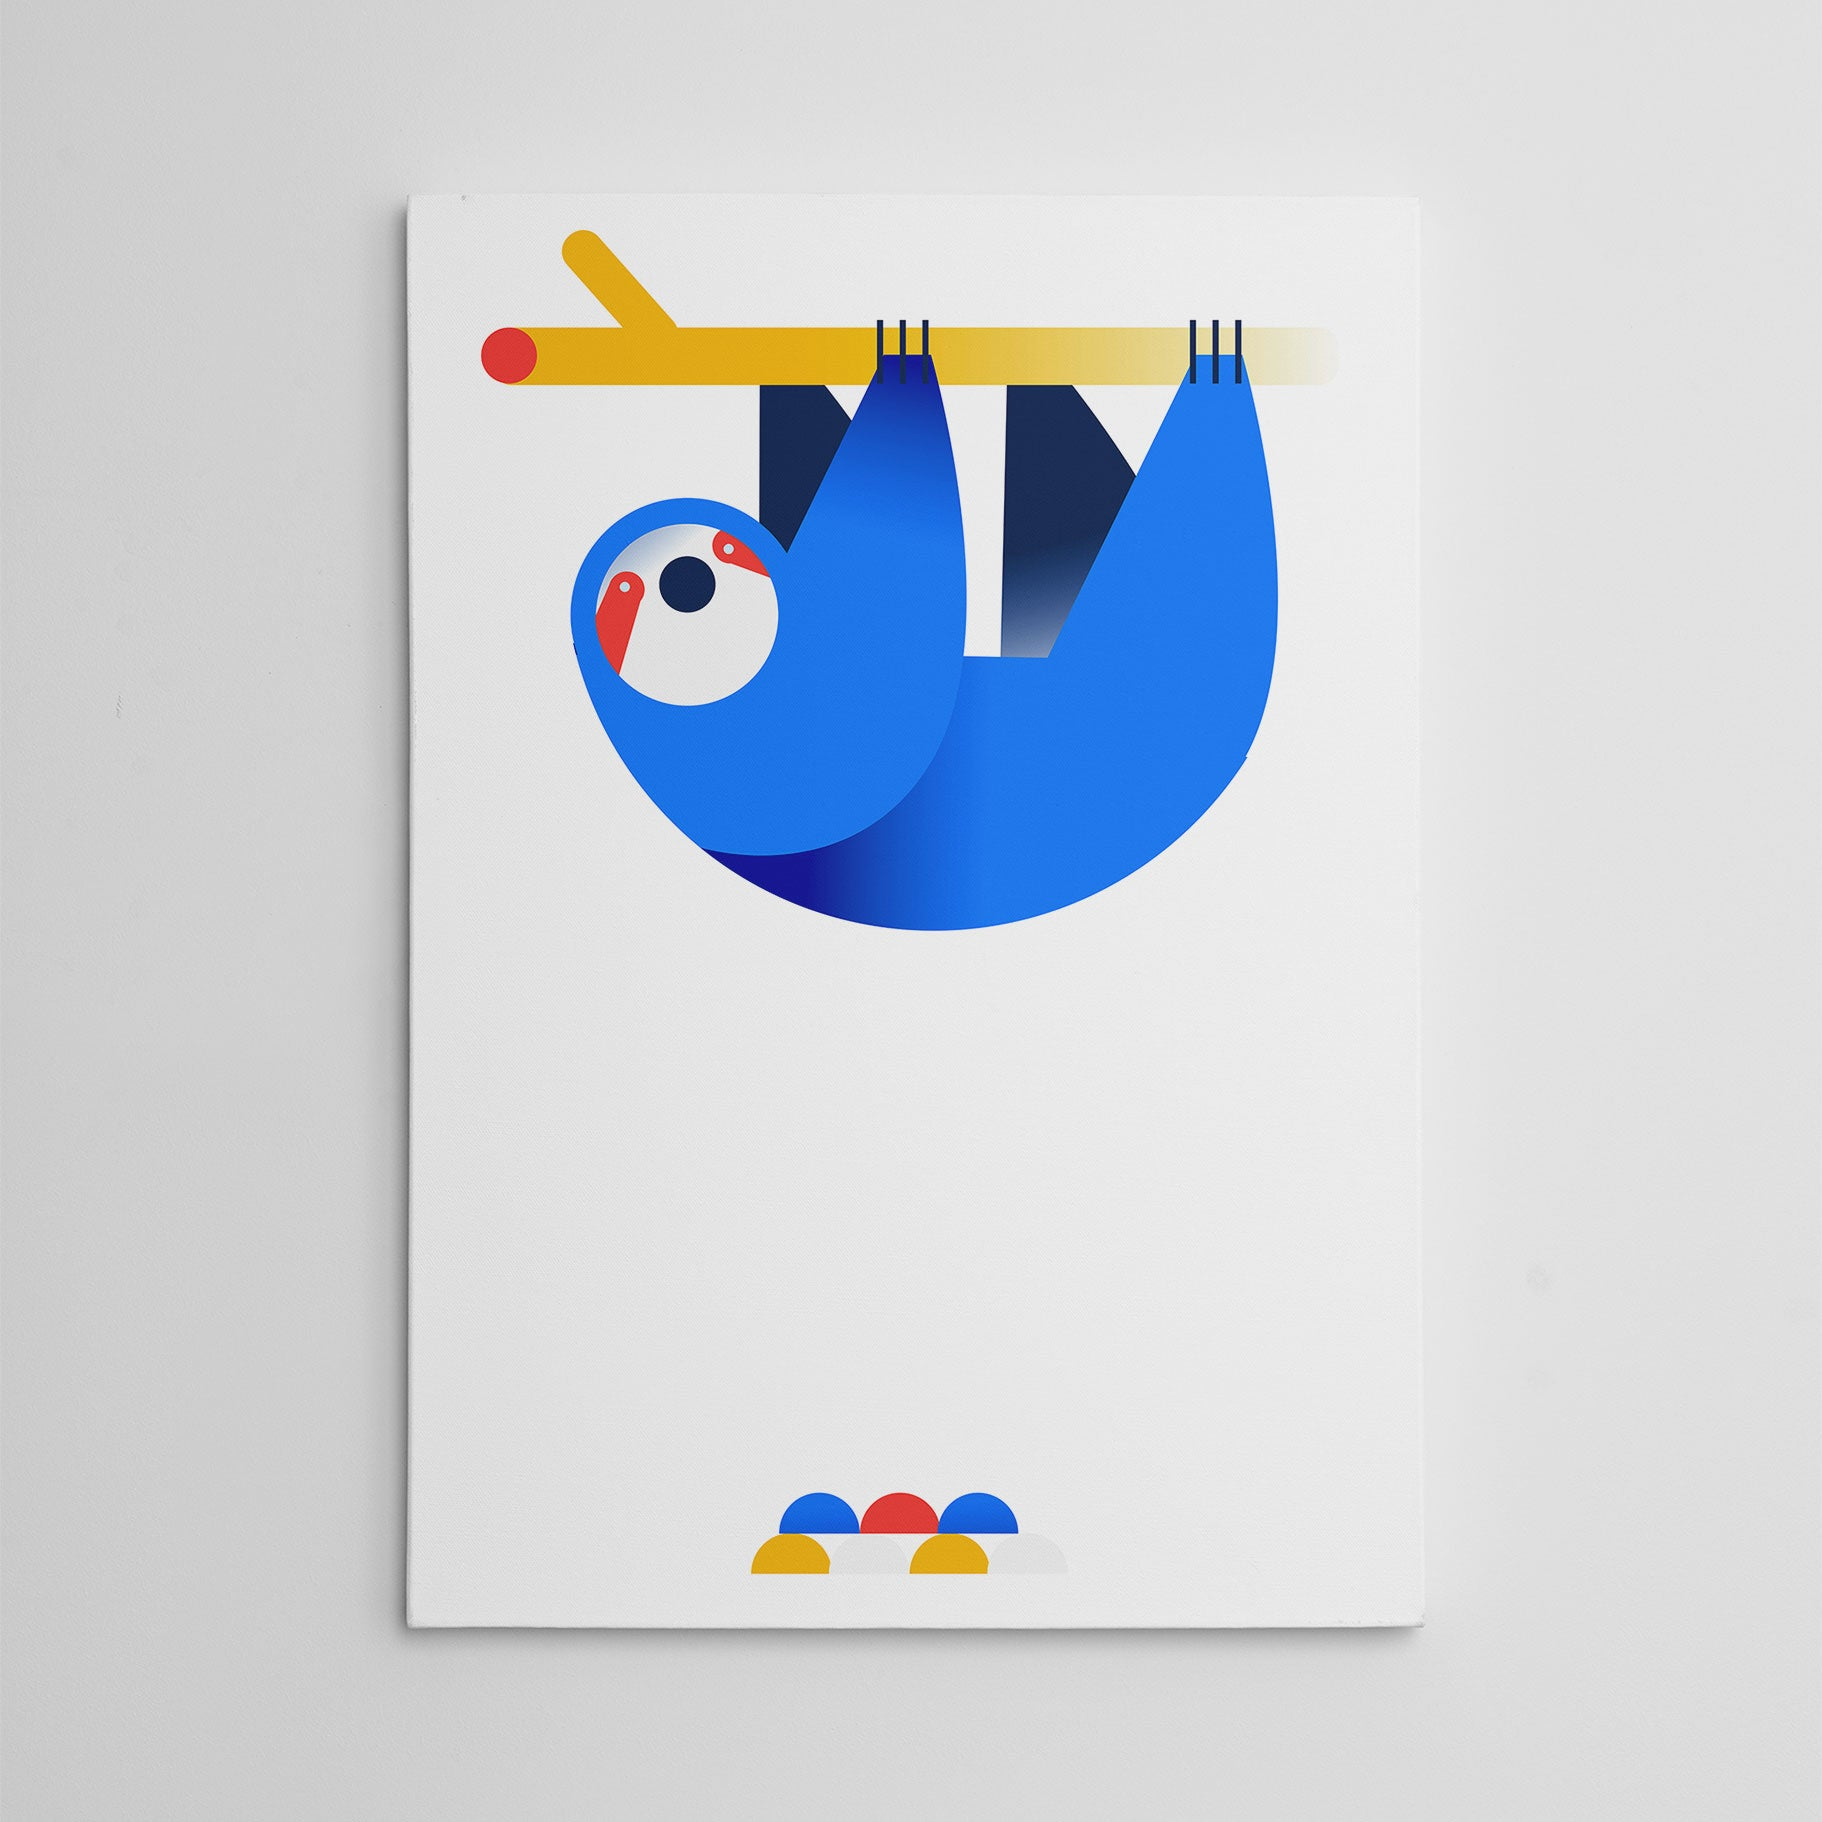 Nursery canvas print with a hanging blue sloth, on white background.